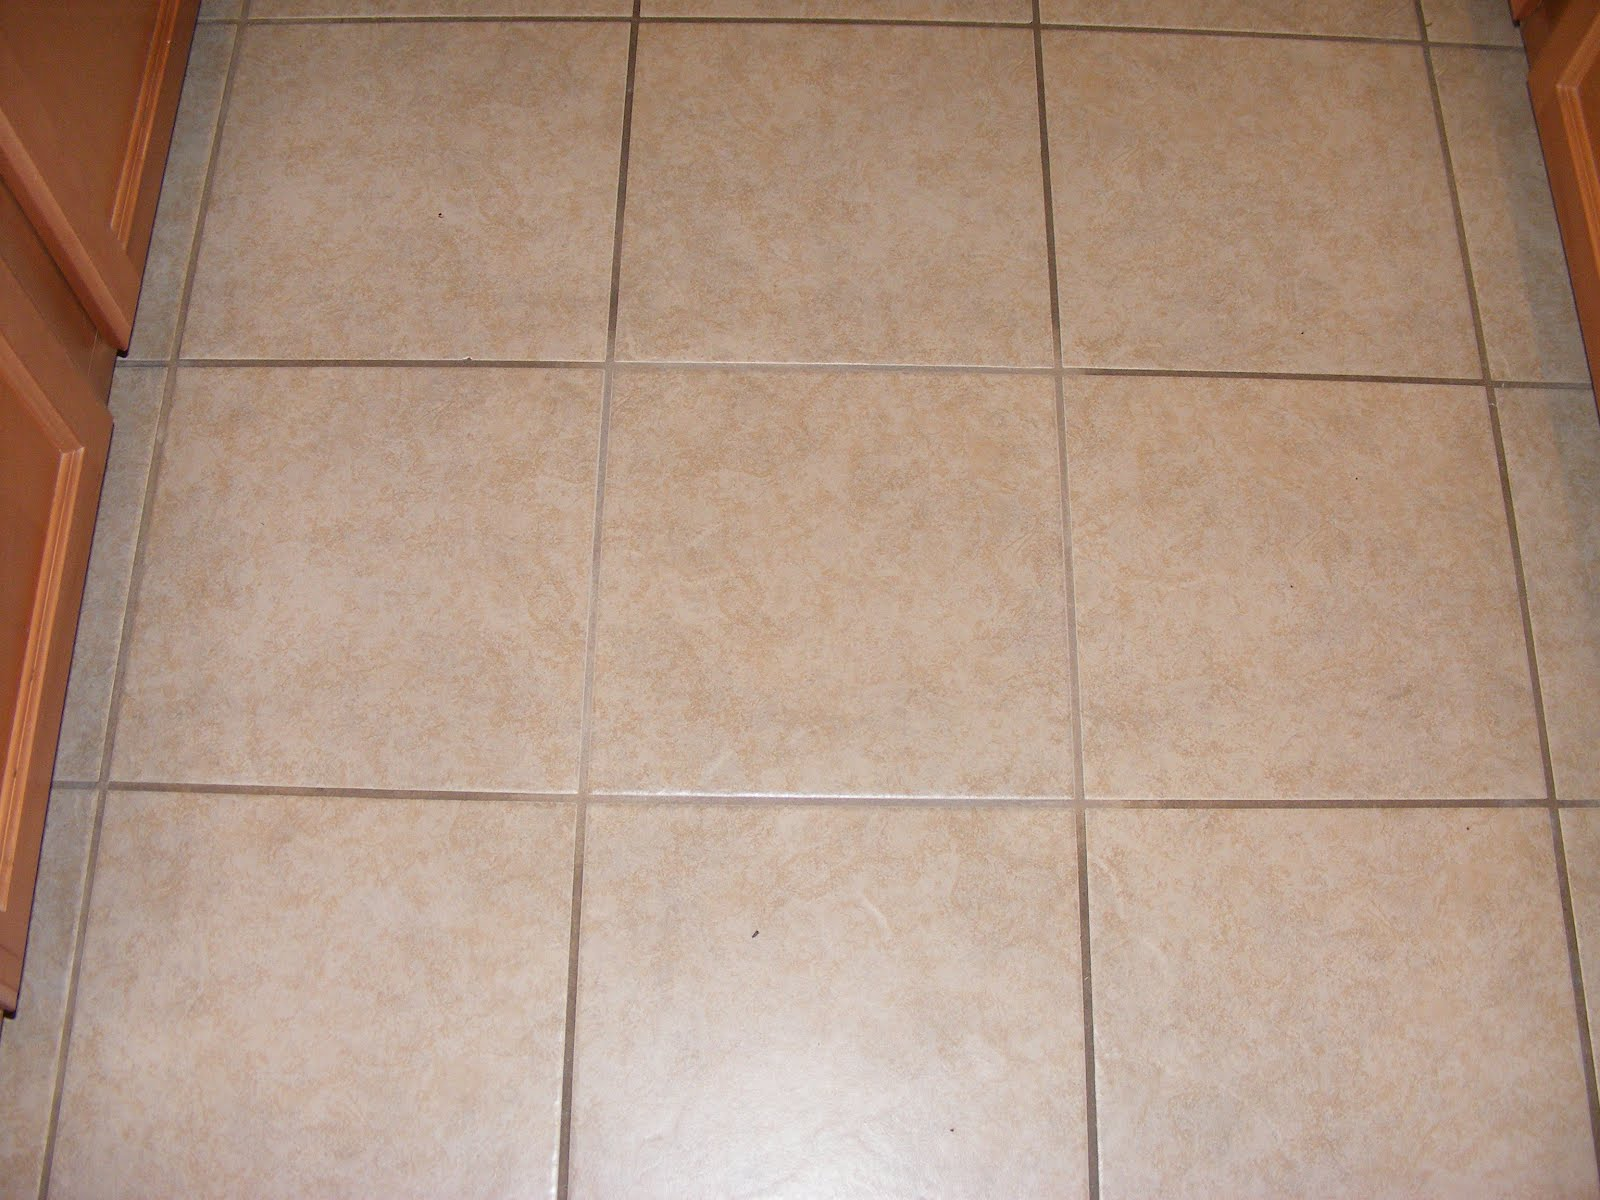 Amazing Grout Cleaner - Best product to clean tile and grout